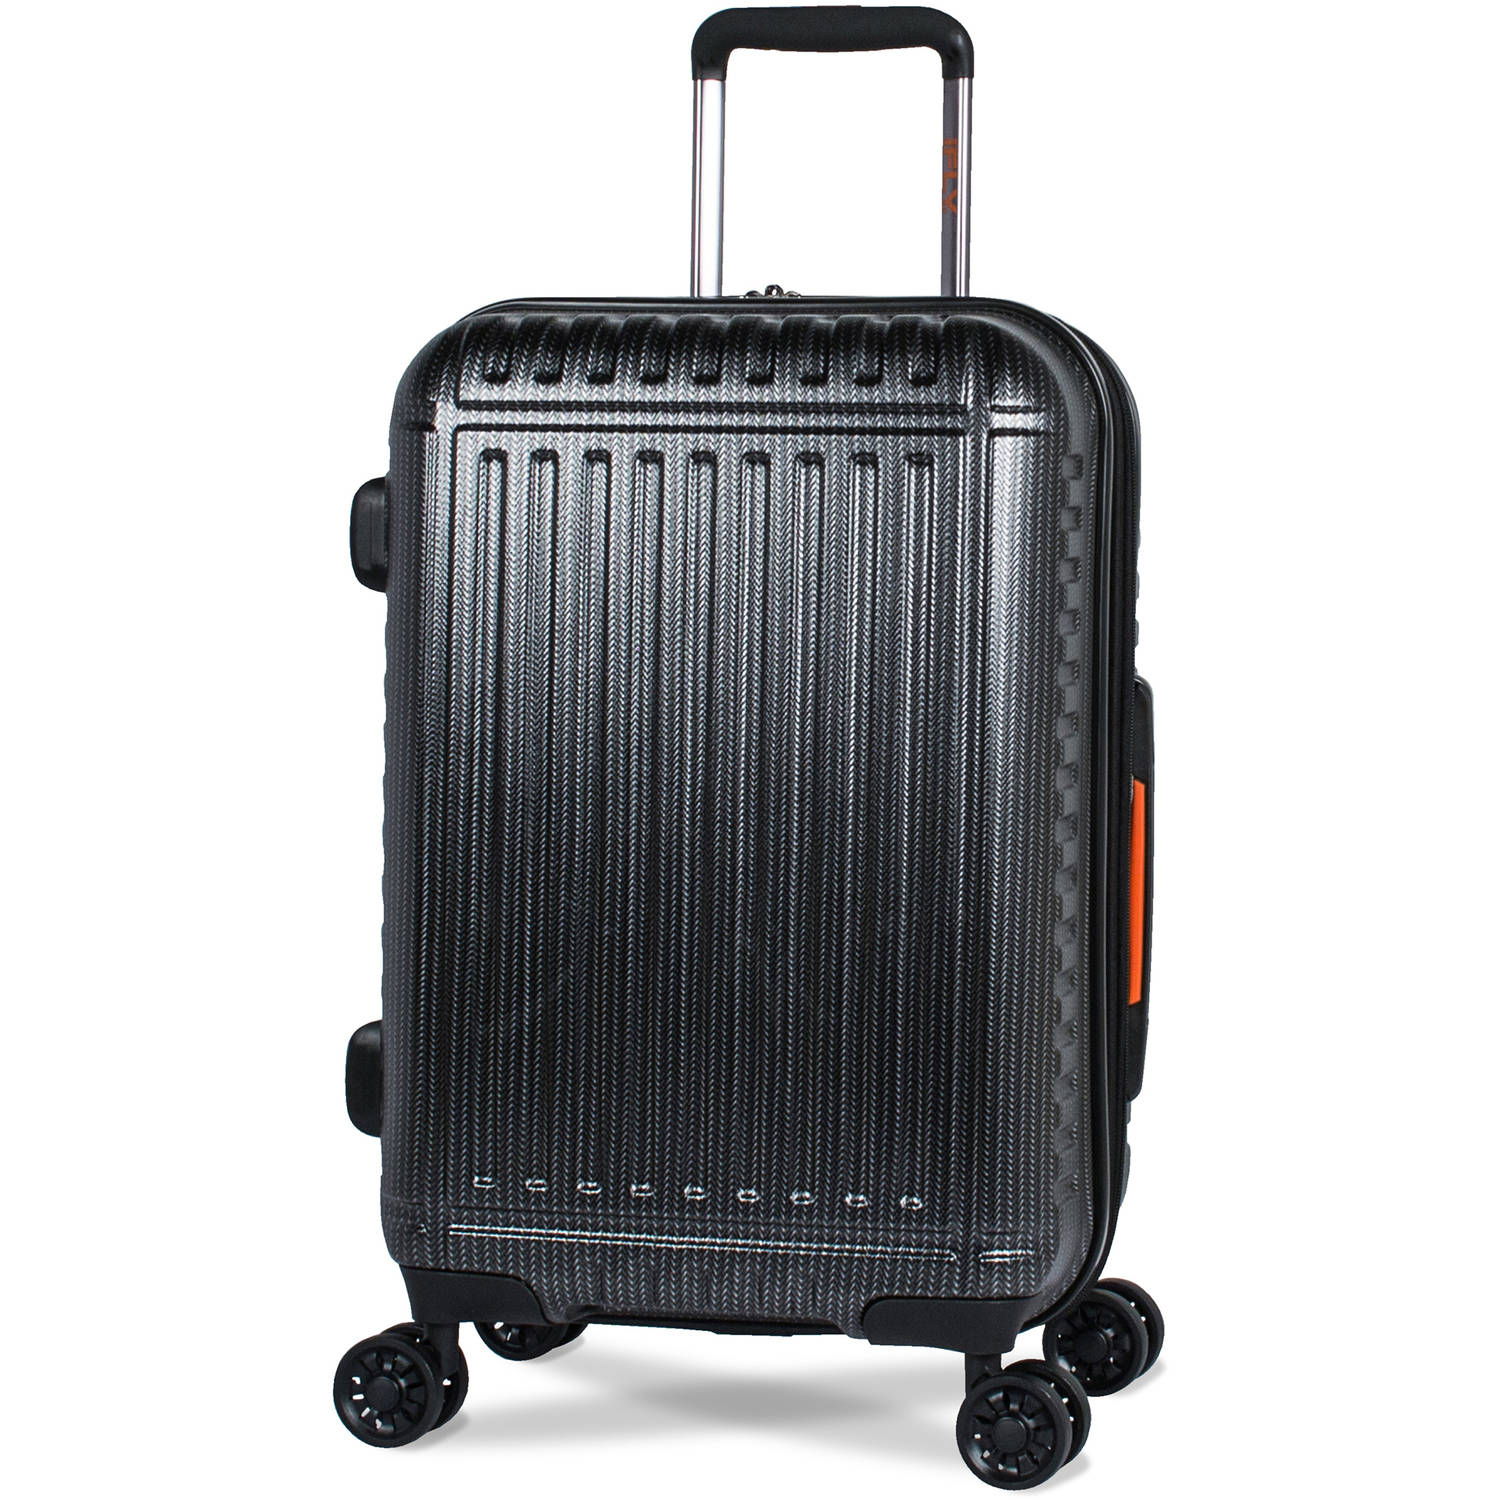 iFLY 20 Carry-On Hard-Sided Racer Luggage, Black